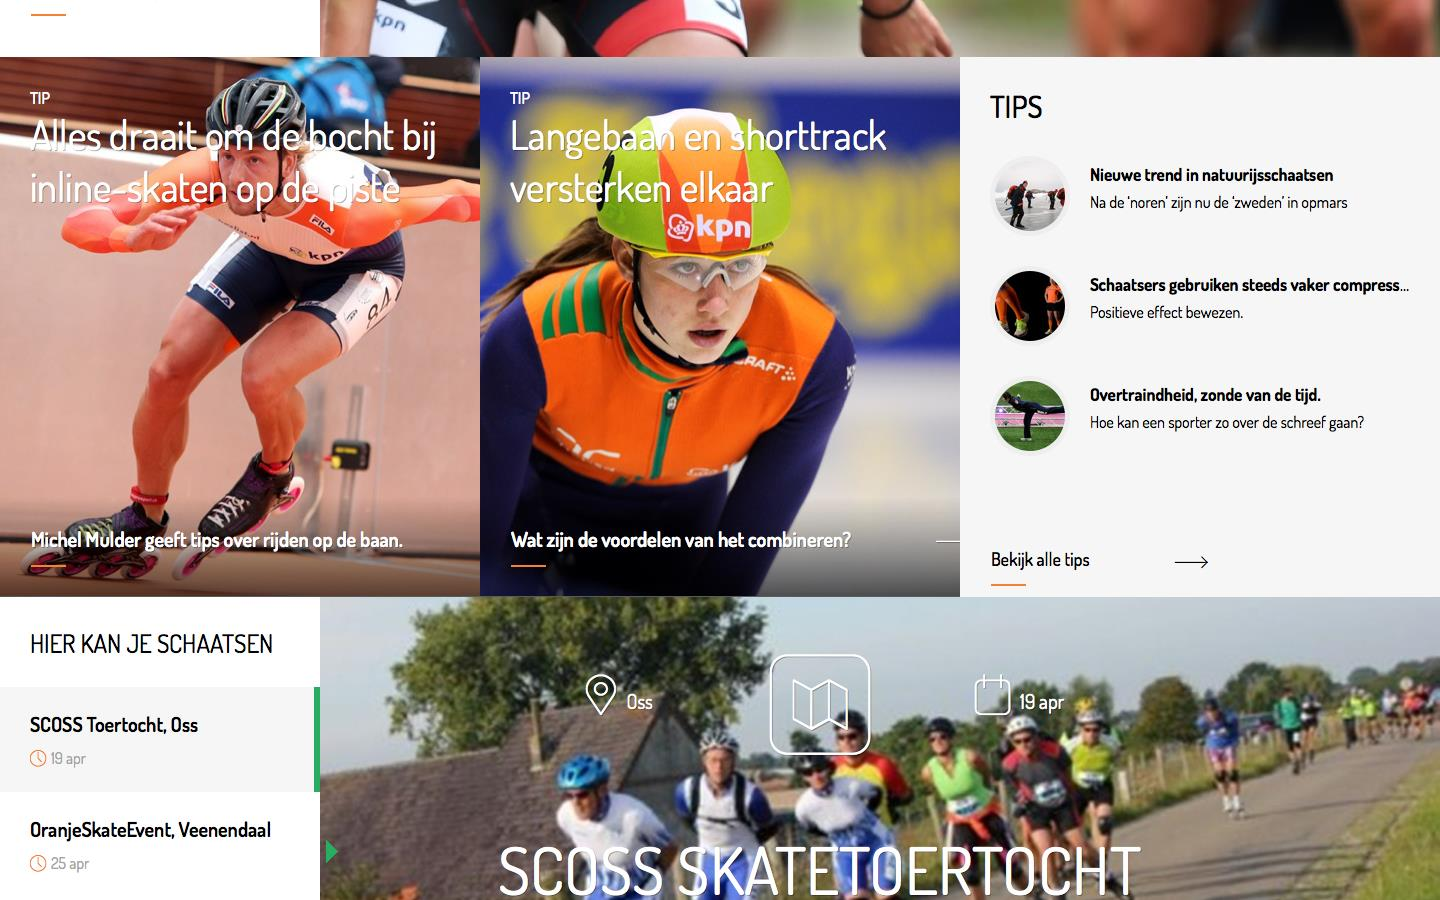 DOORKLIK VANAF HOMEPAGE NAAR TIPS-ARTIKEL OF VIDEO